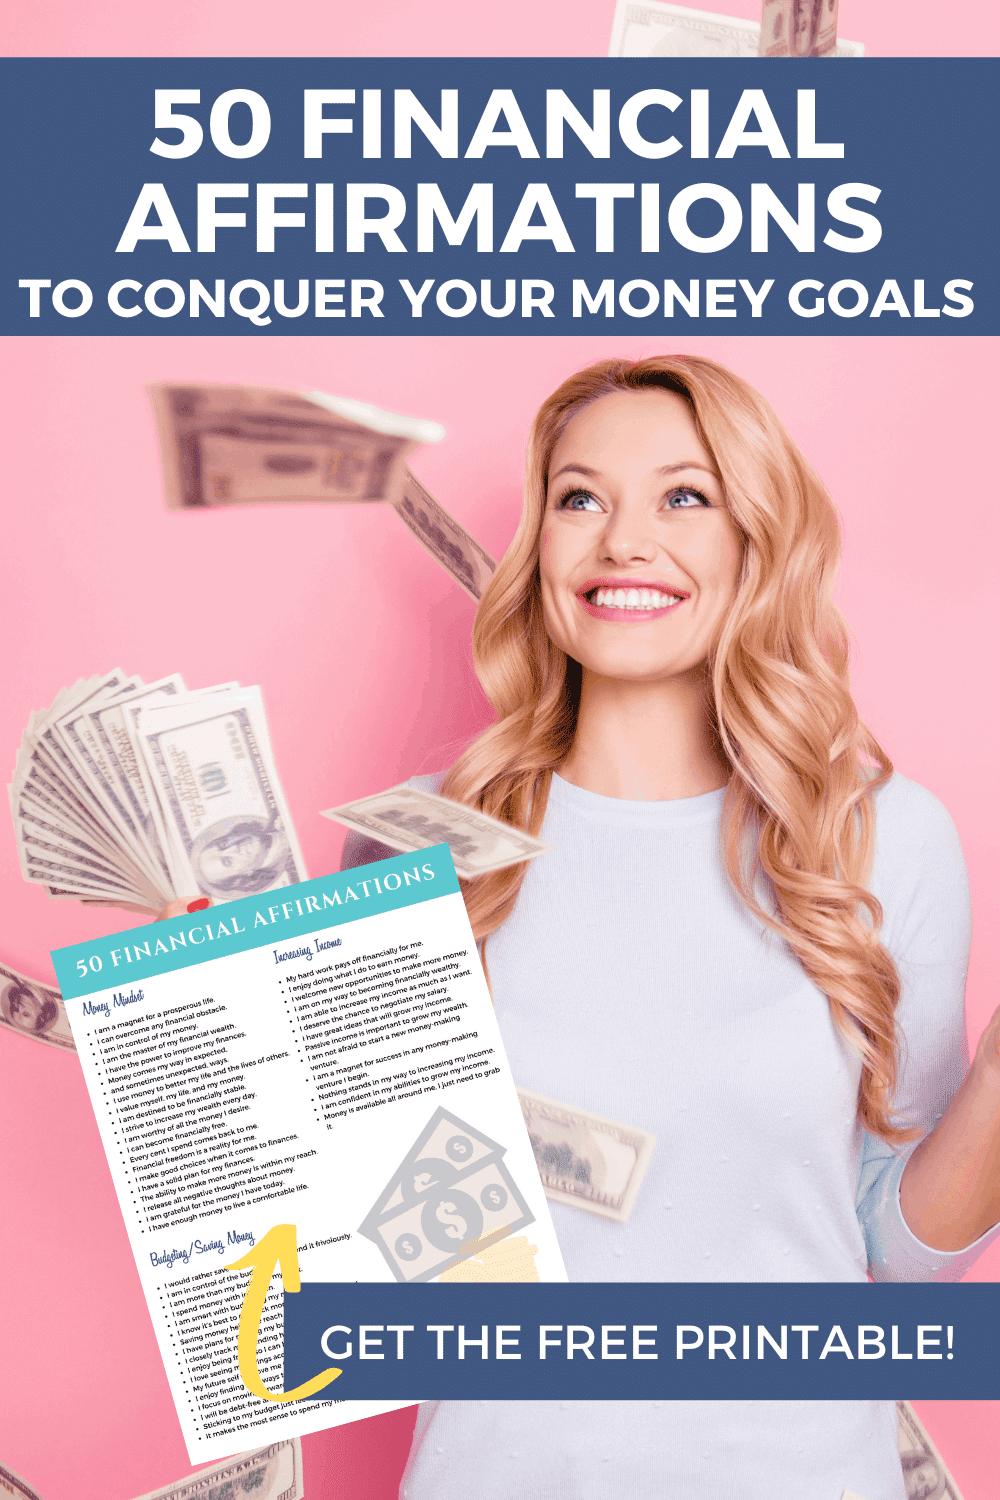 50 Financial Affirmations to Conquer your Money Goals (Free Printable)